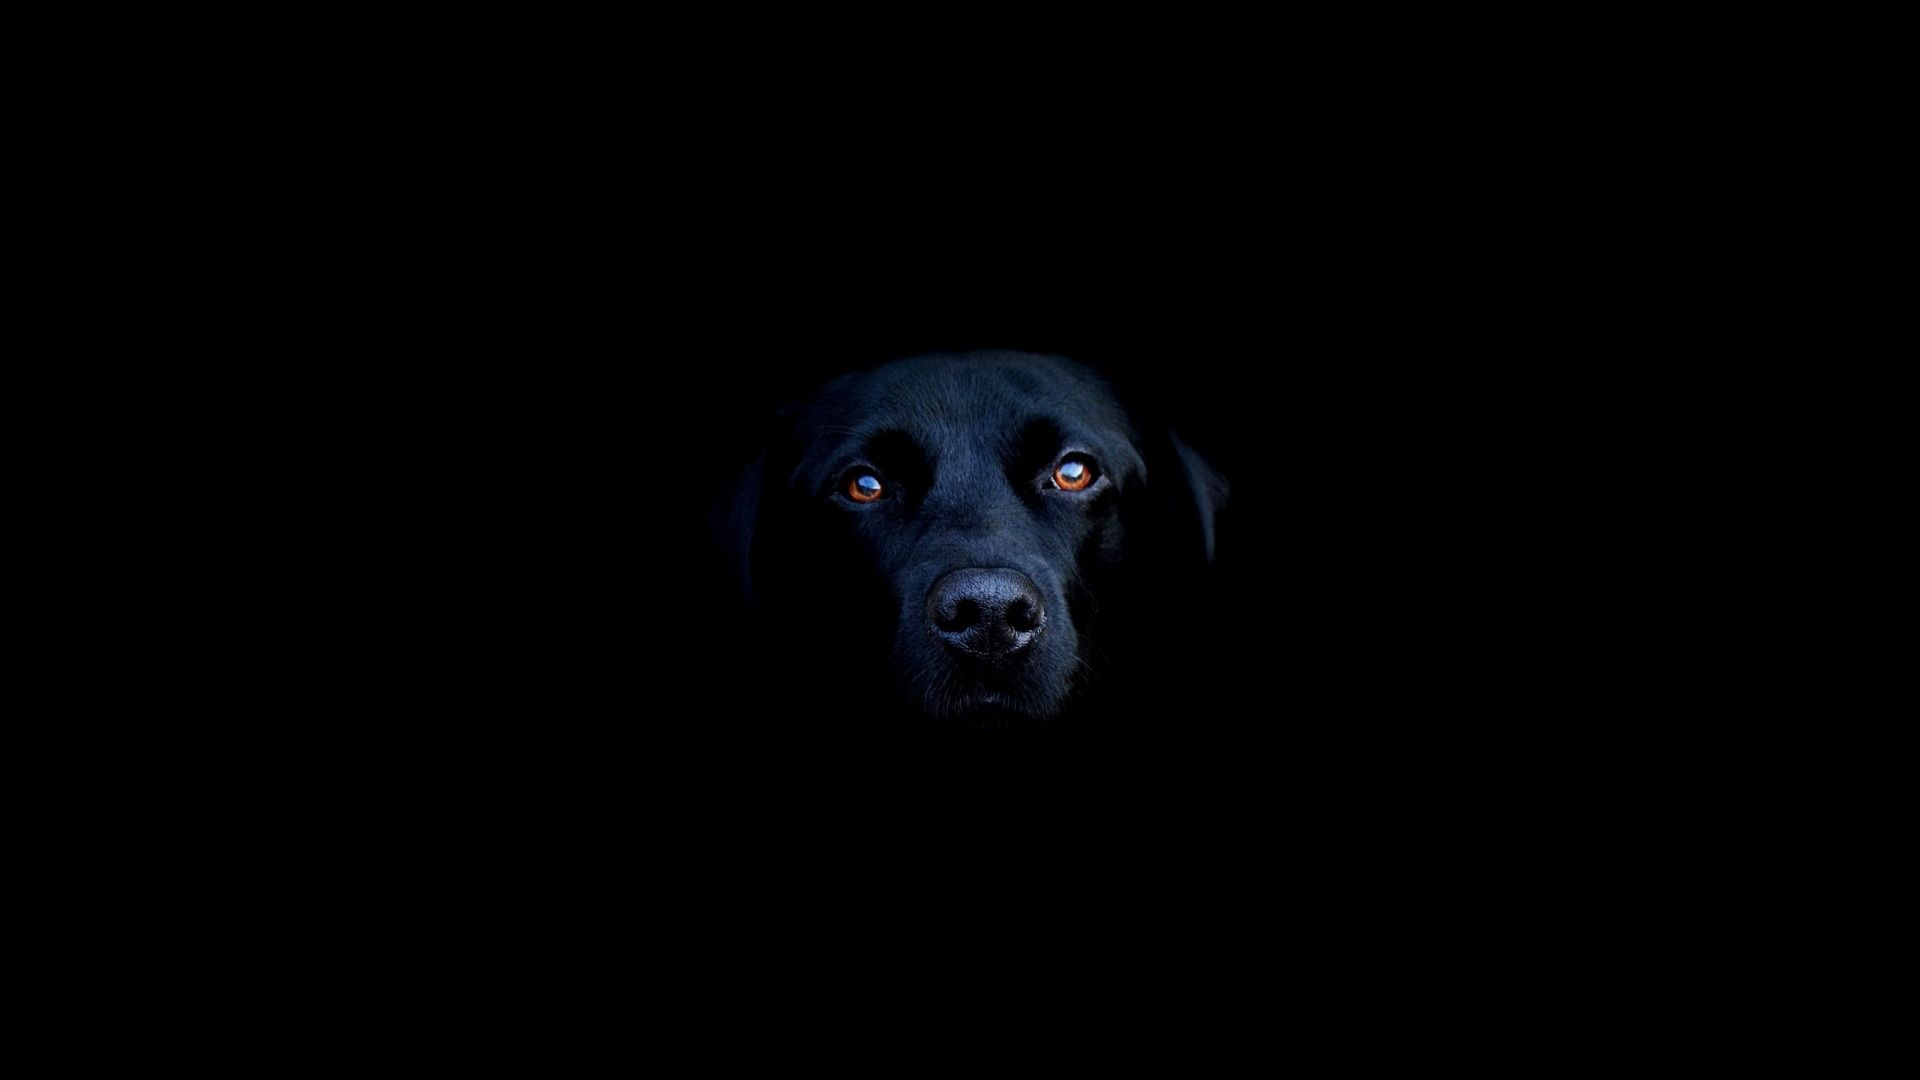 Black Dog HD Wallpapers - Free download latest Black Dog HD ...